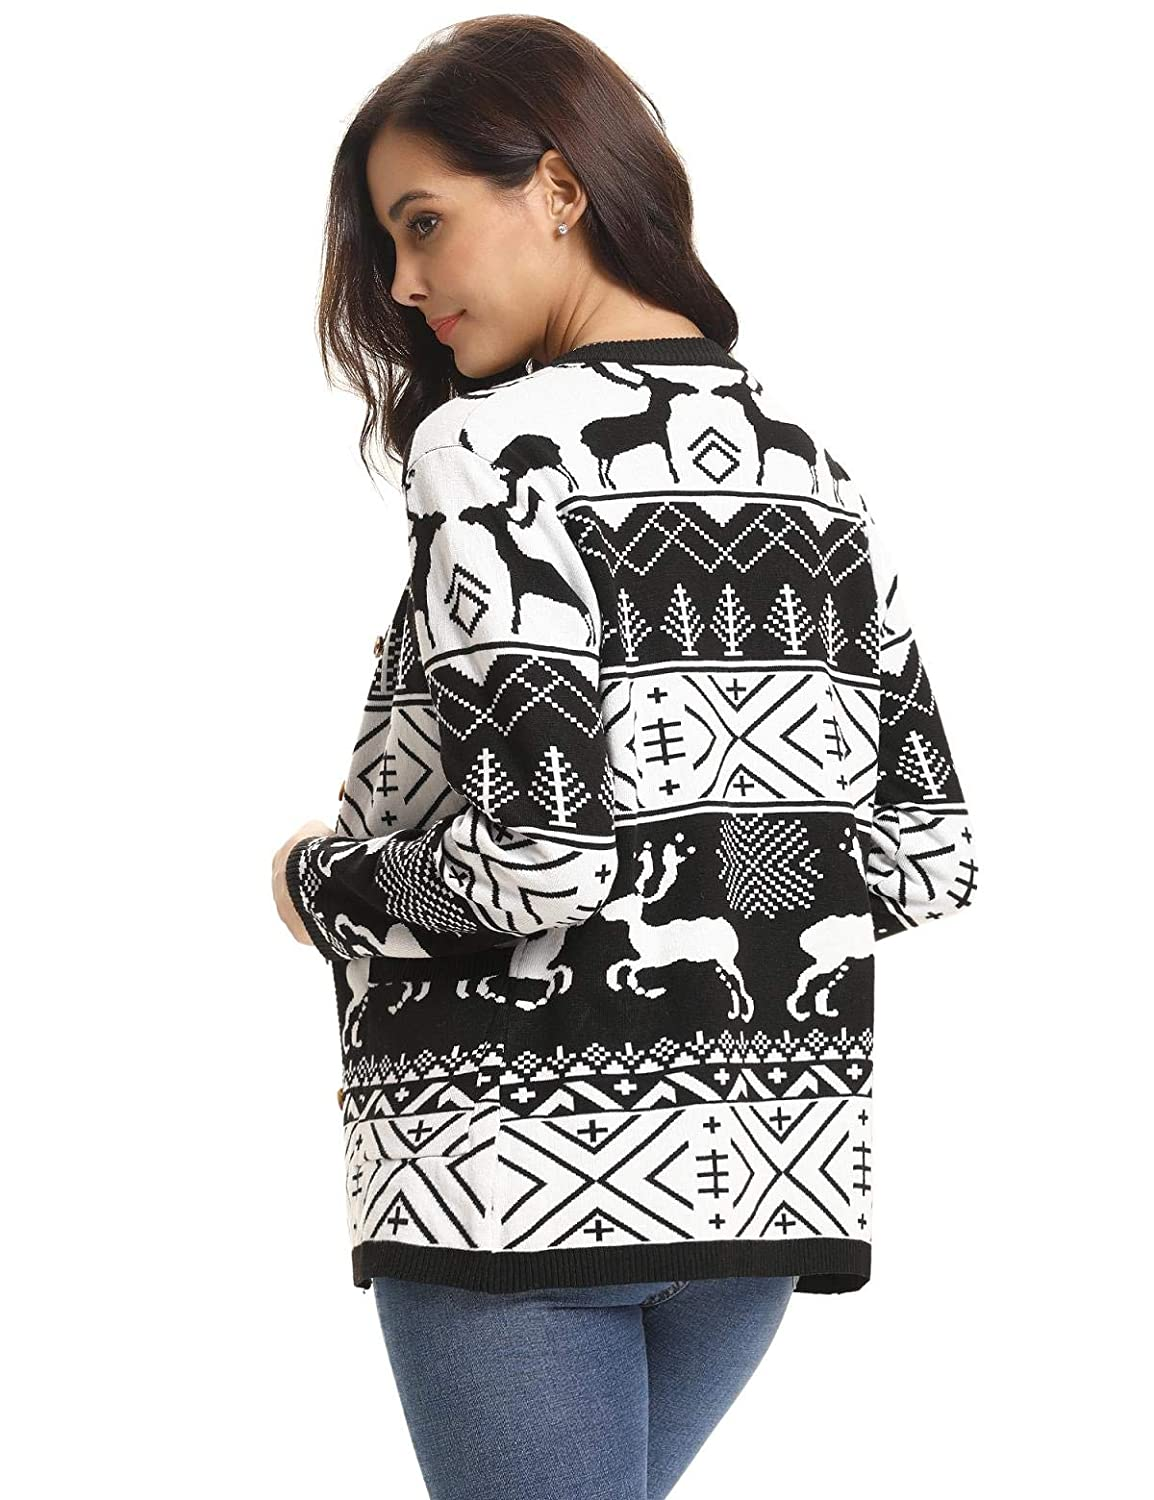 a5af9c34f5 Aibrou Women Christmas Sweater Pullover Reindeer Tree Snowflakes Patterns  Pullover Tops at Amazon Women s Clothing store